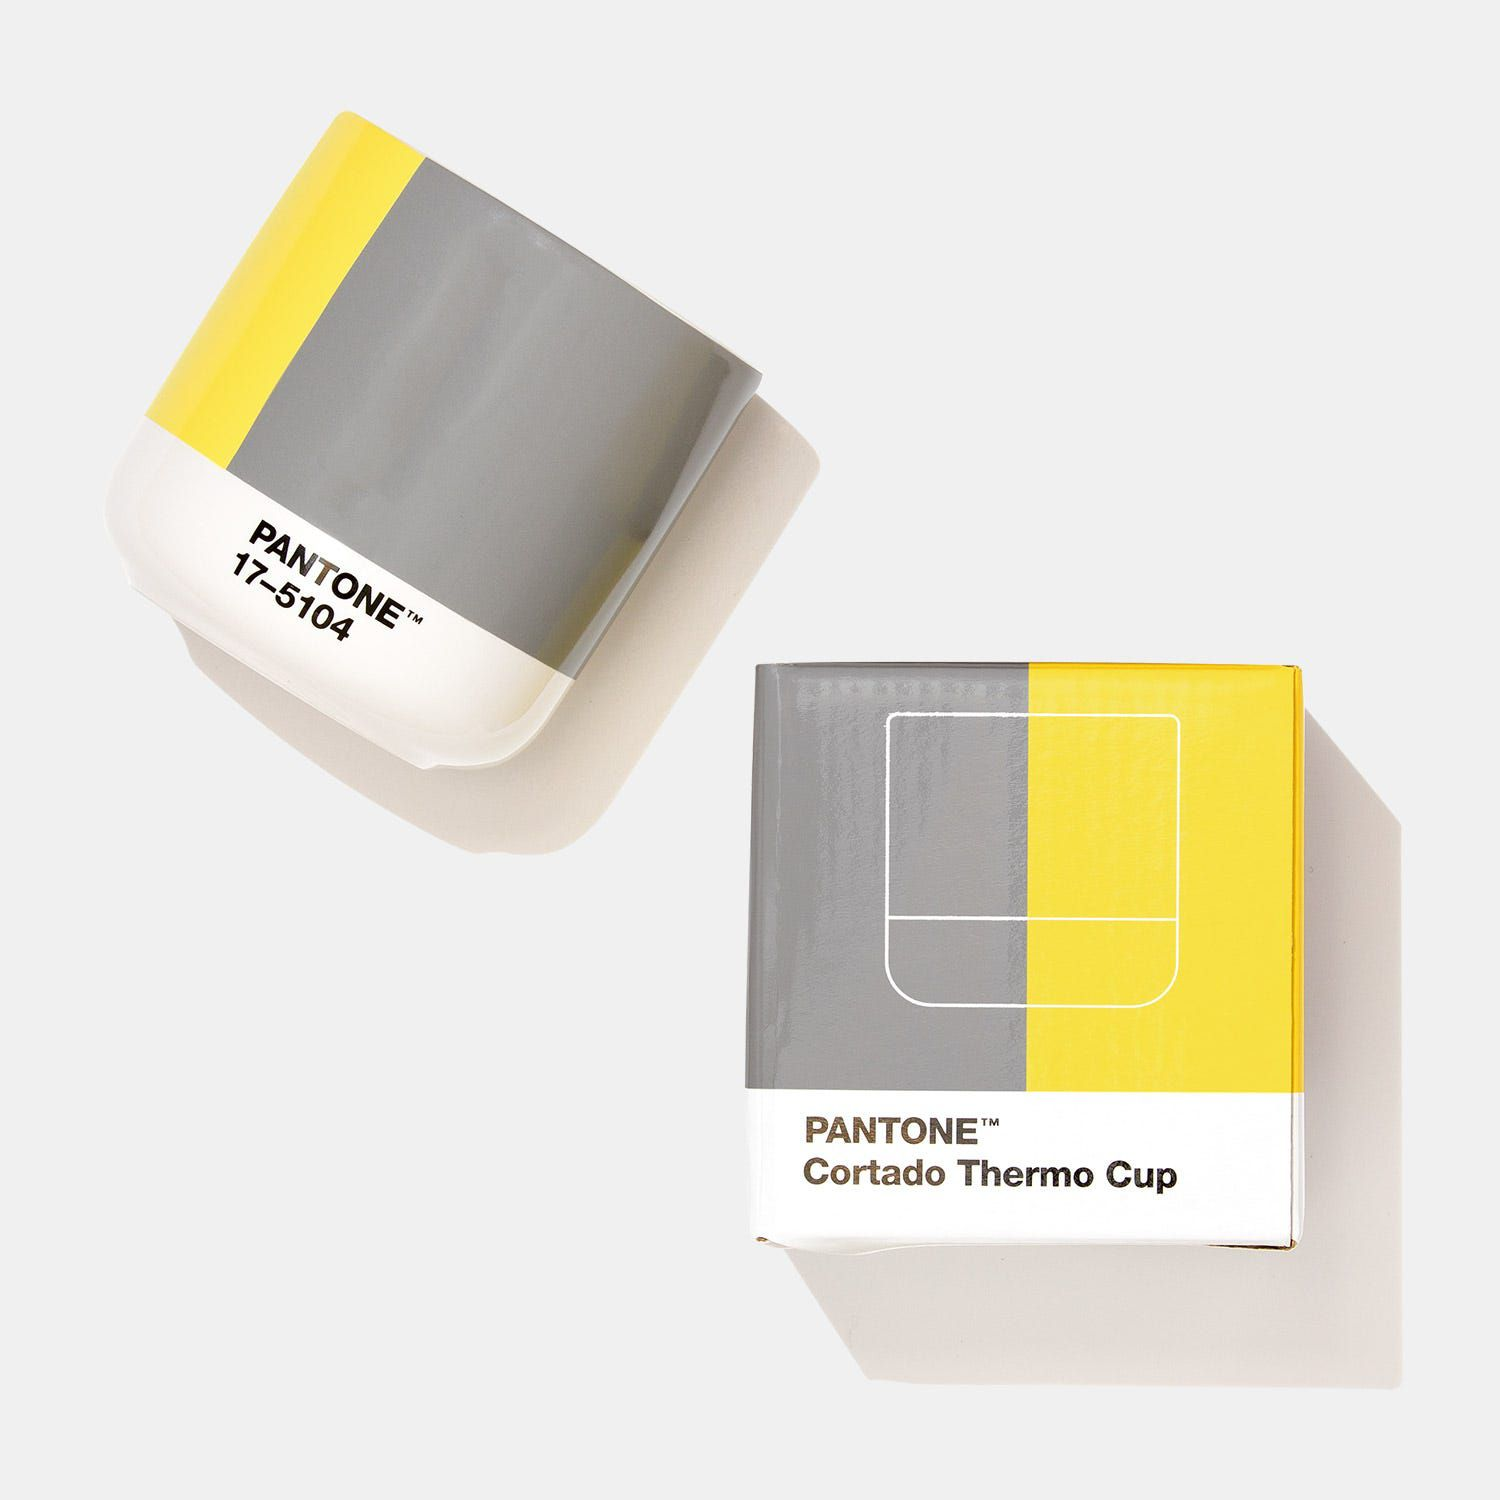 Pantone's 2021 Colors of the Year—Ultimate Gray and Illuminating